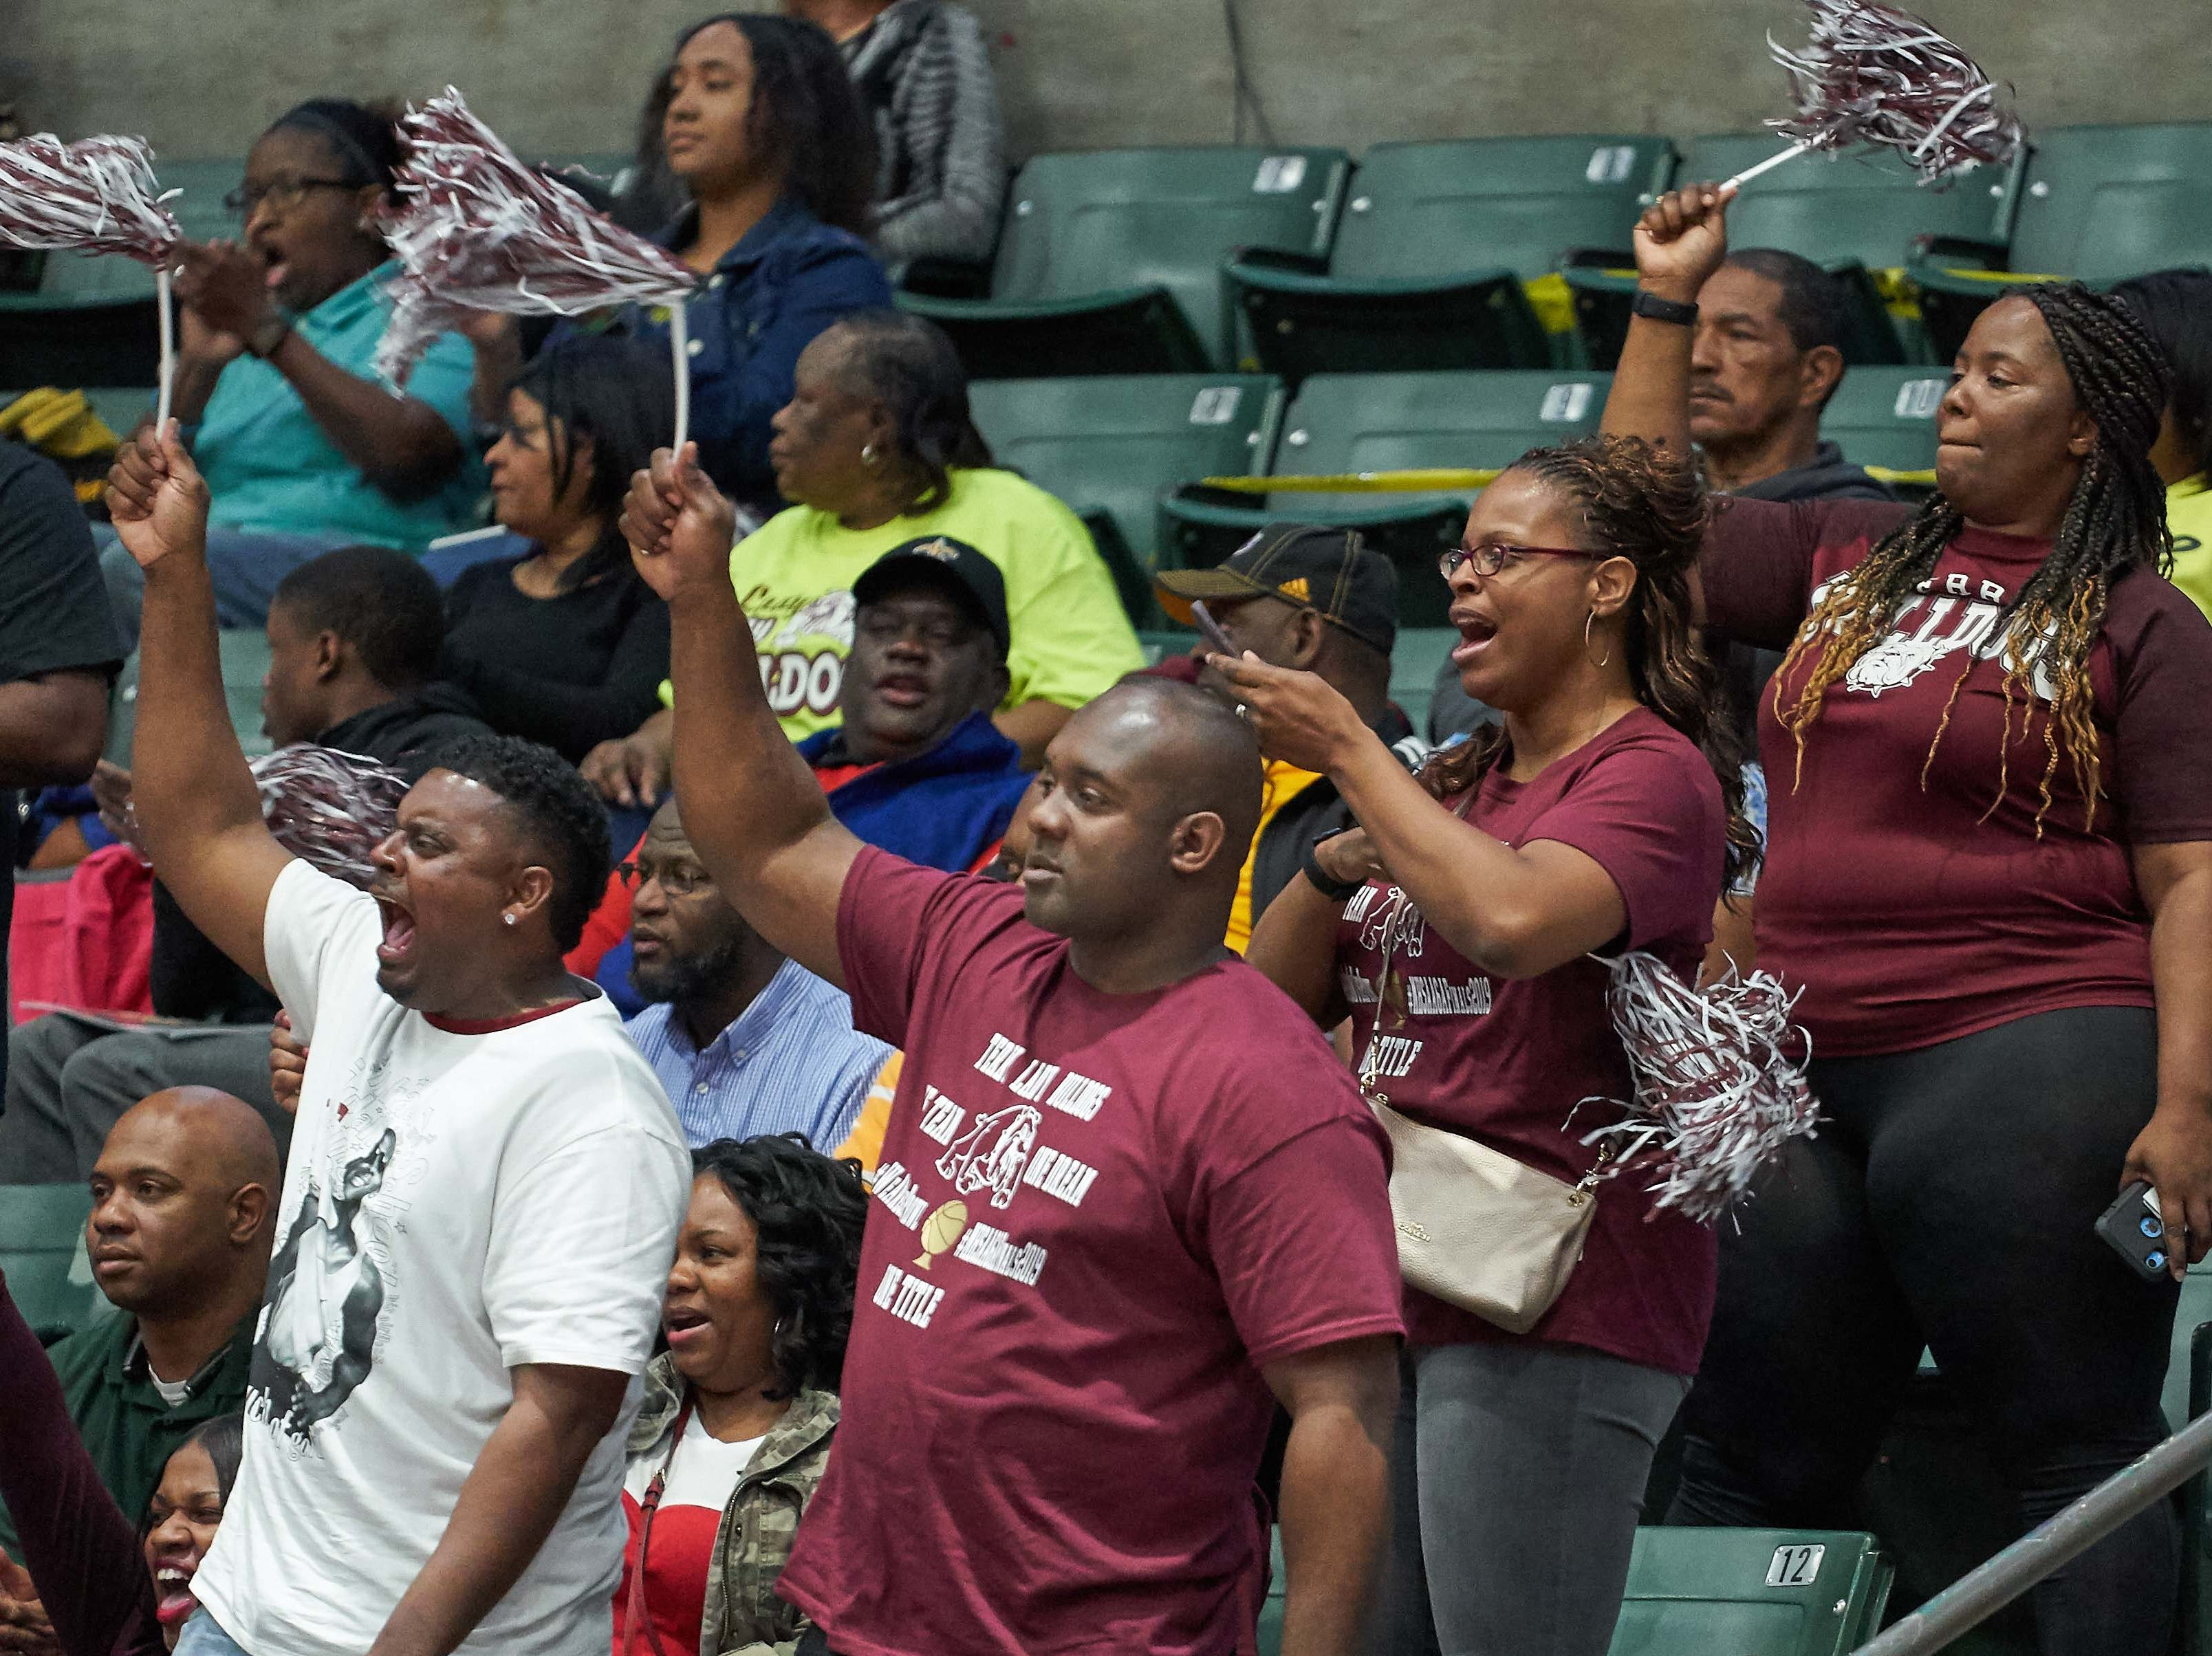 Terry fans cheer during the MHSAA 6A Girls Basketball Championship Finals held at the Mississippi Coliseum in Jackson, MS, Saturday March 9th, 2019.(Bob Smith)